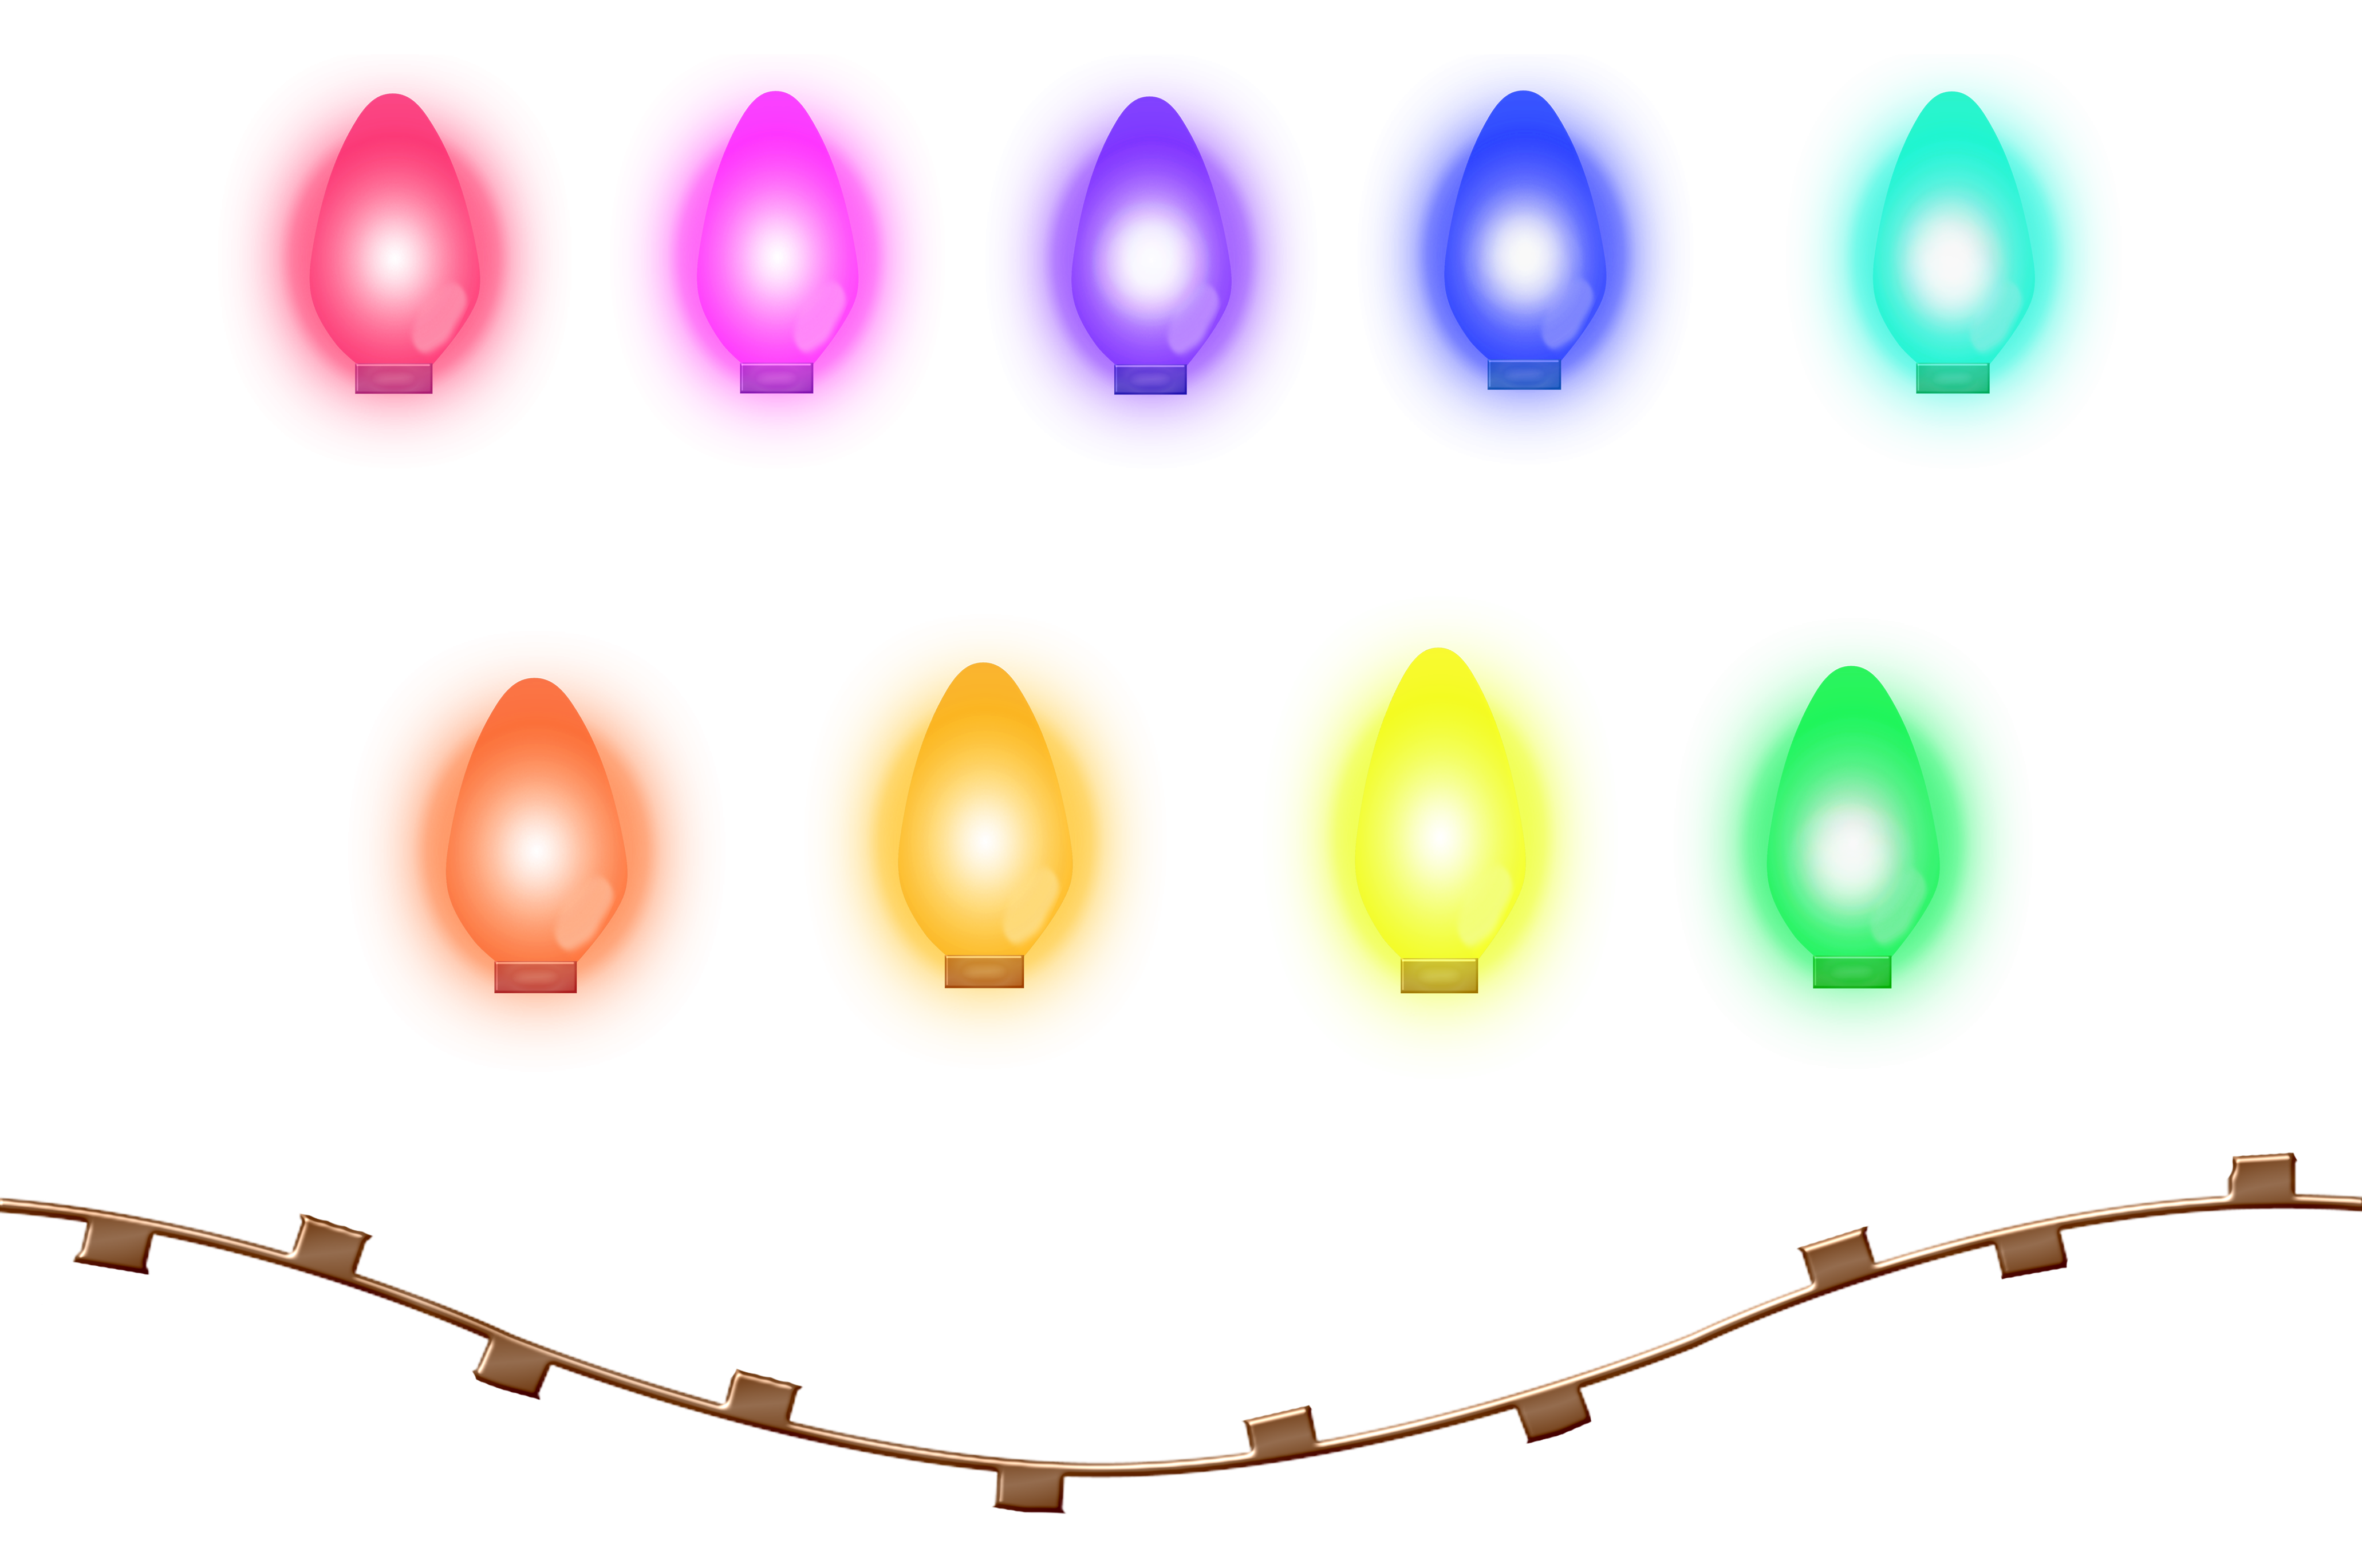 christmas lights colors drawing free image https pixy org licence php